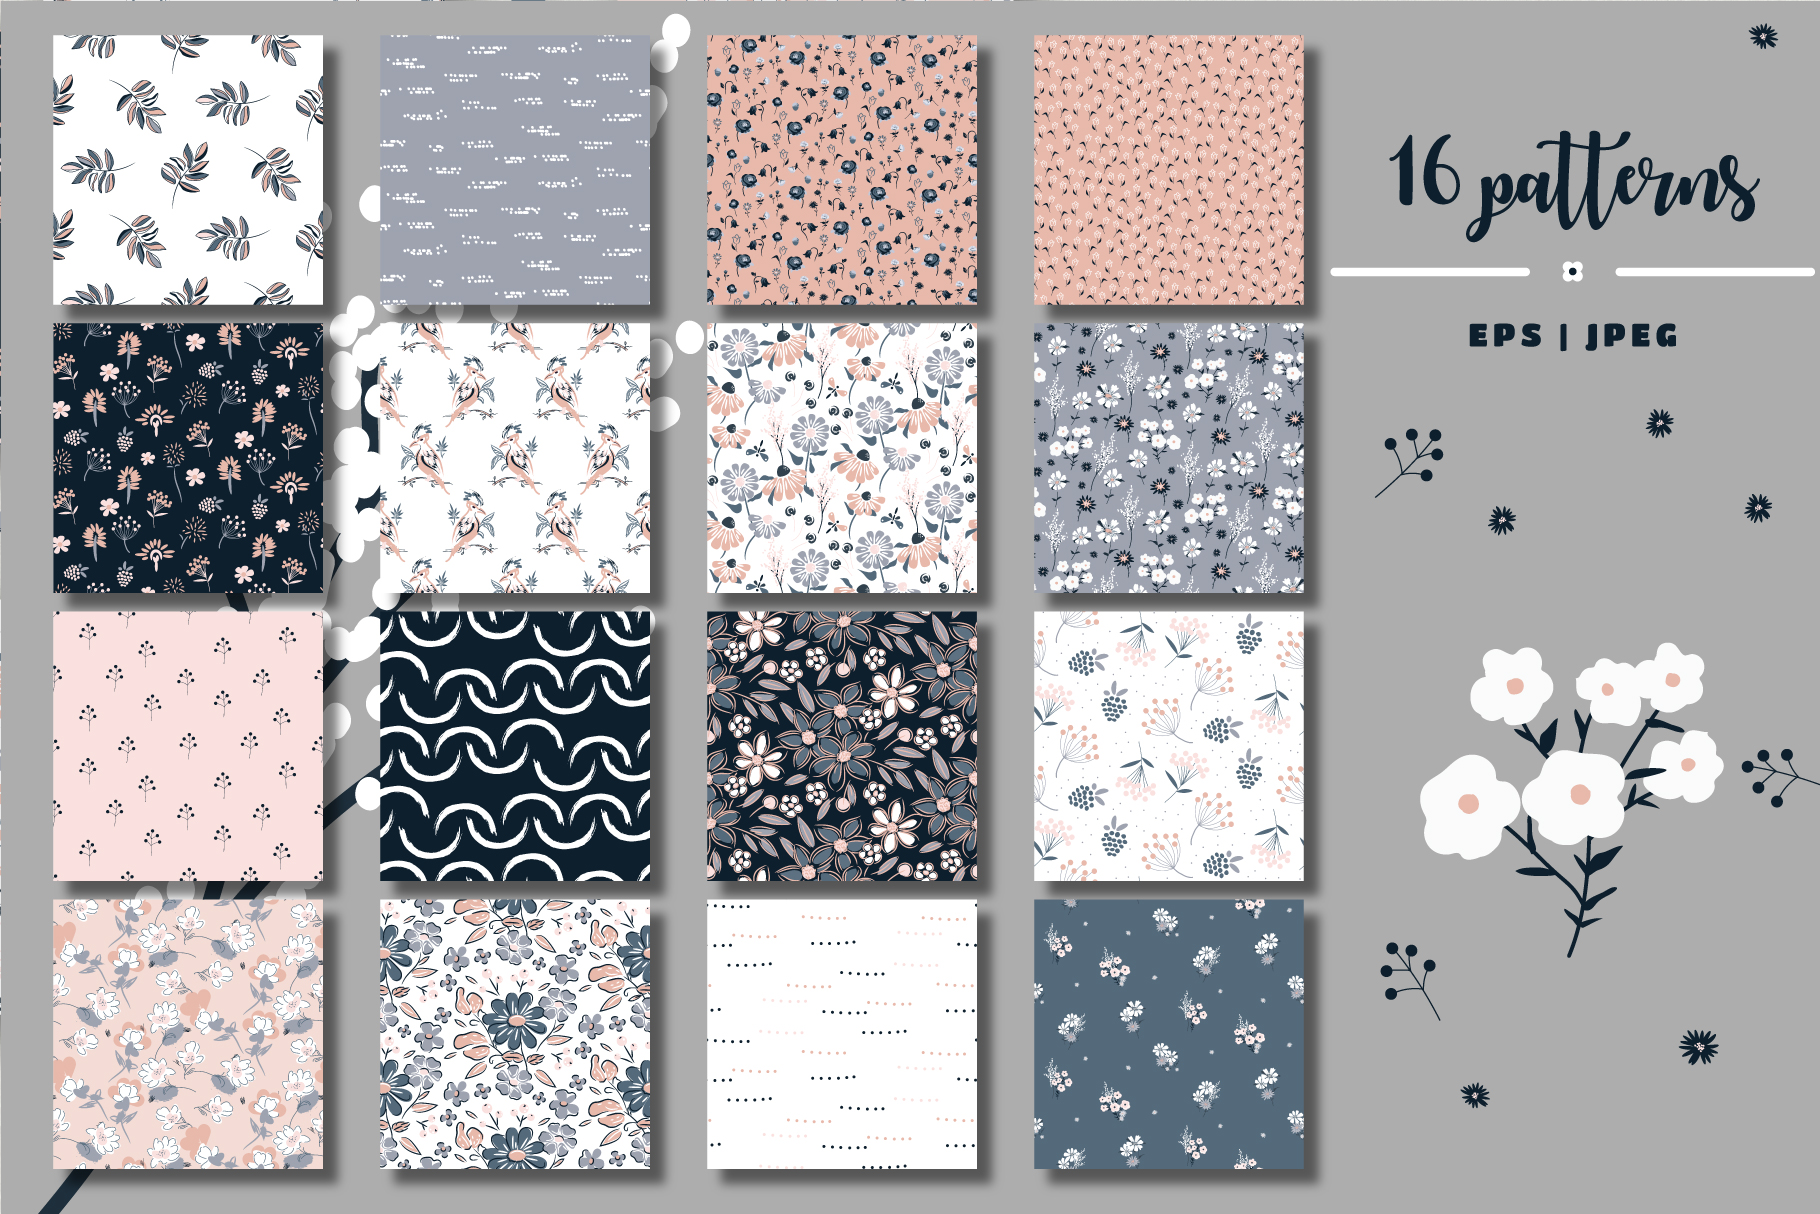 Floral Field - Patterns & Graphics